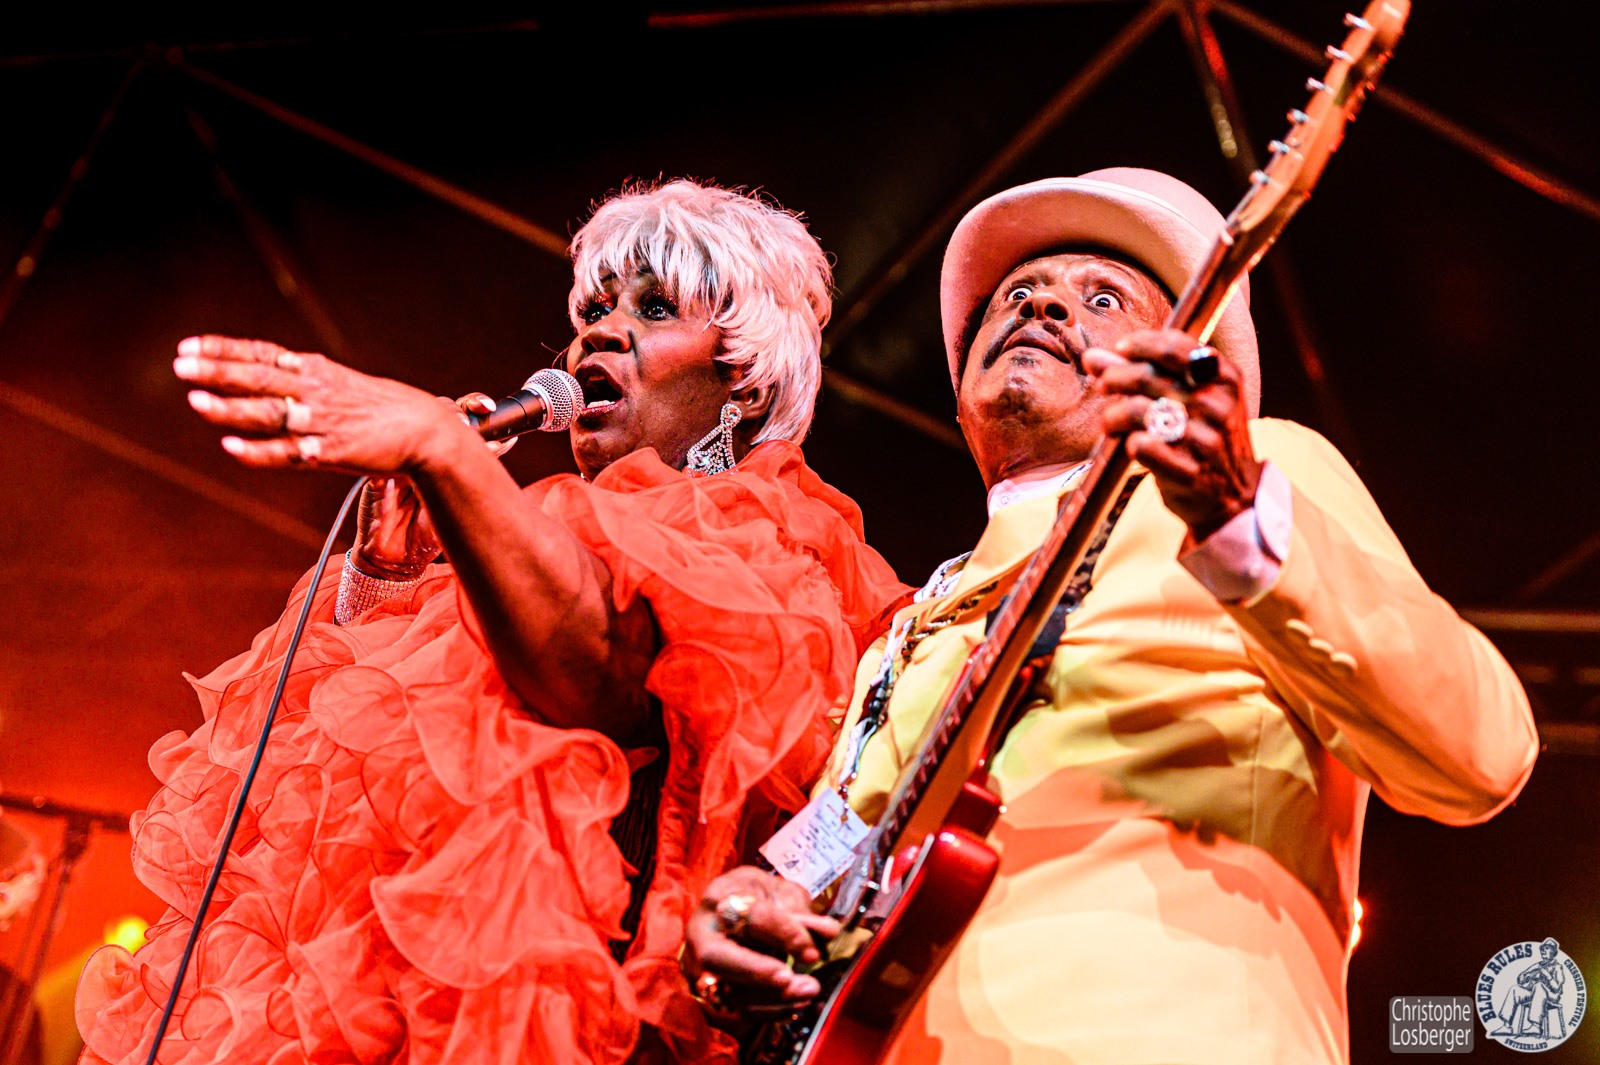 johnie b & queen iretta sanders blues band revue blues rules 2019